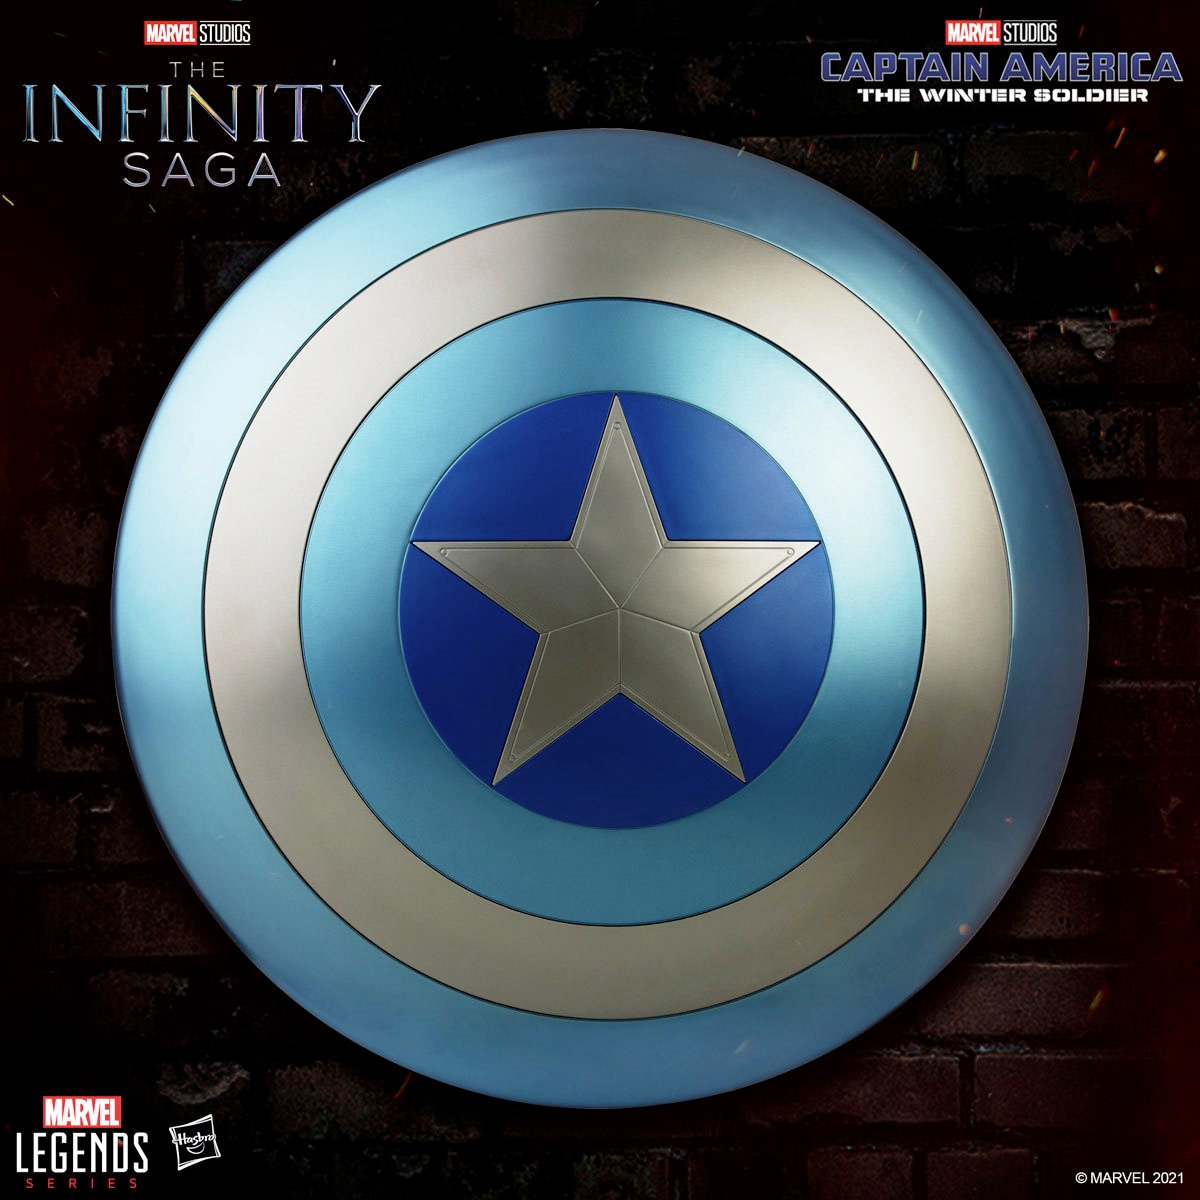 Escudo Marvel Legends Captain America Stealth Shield from The Winter Soldier